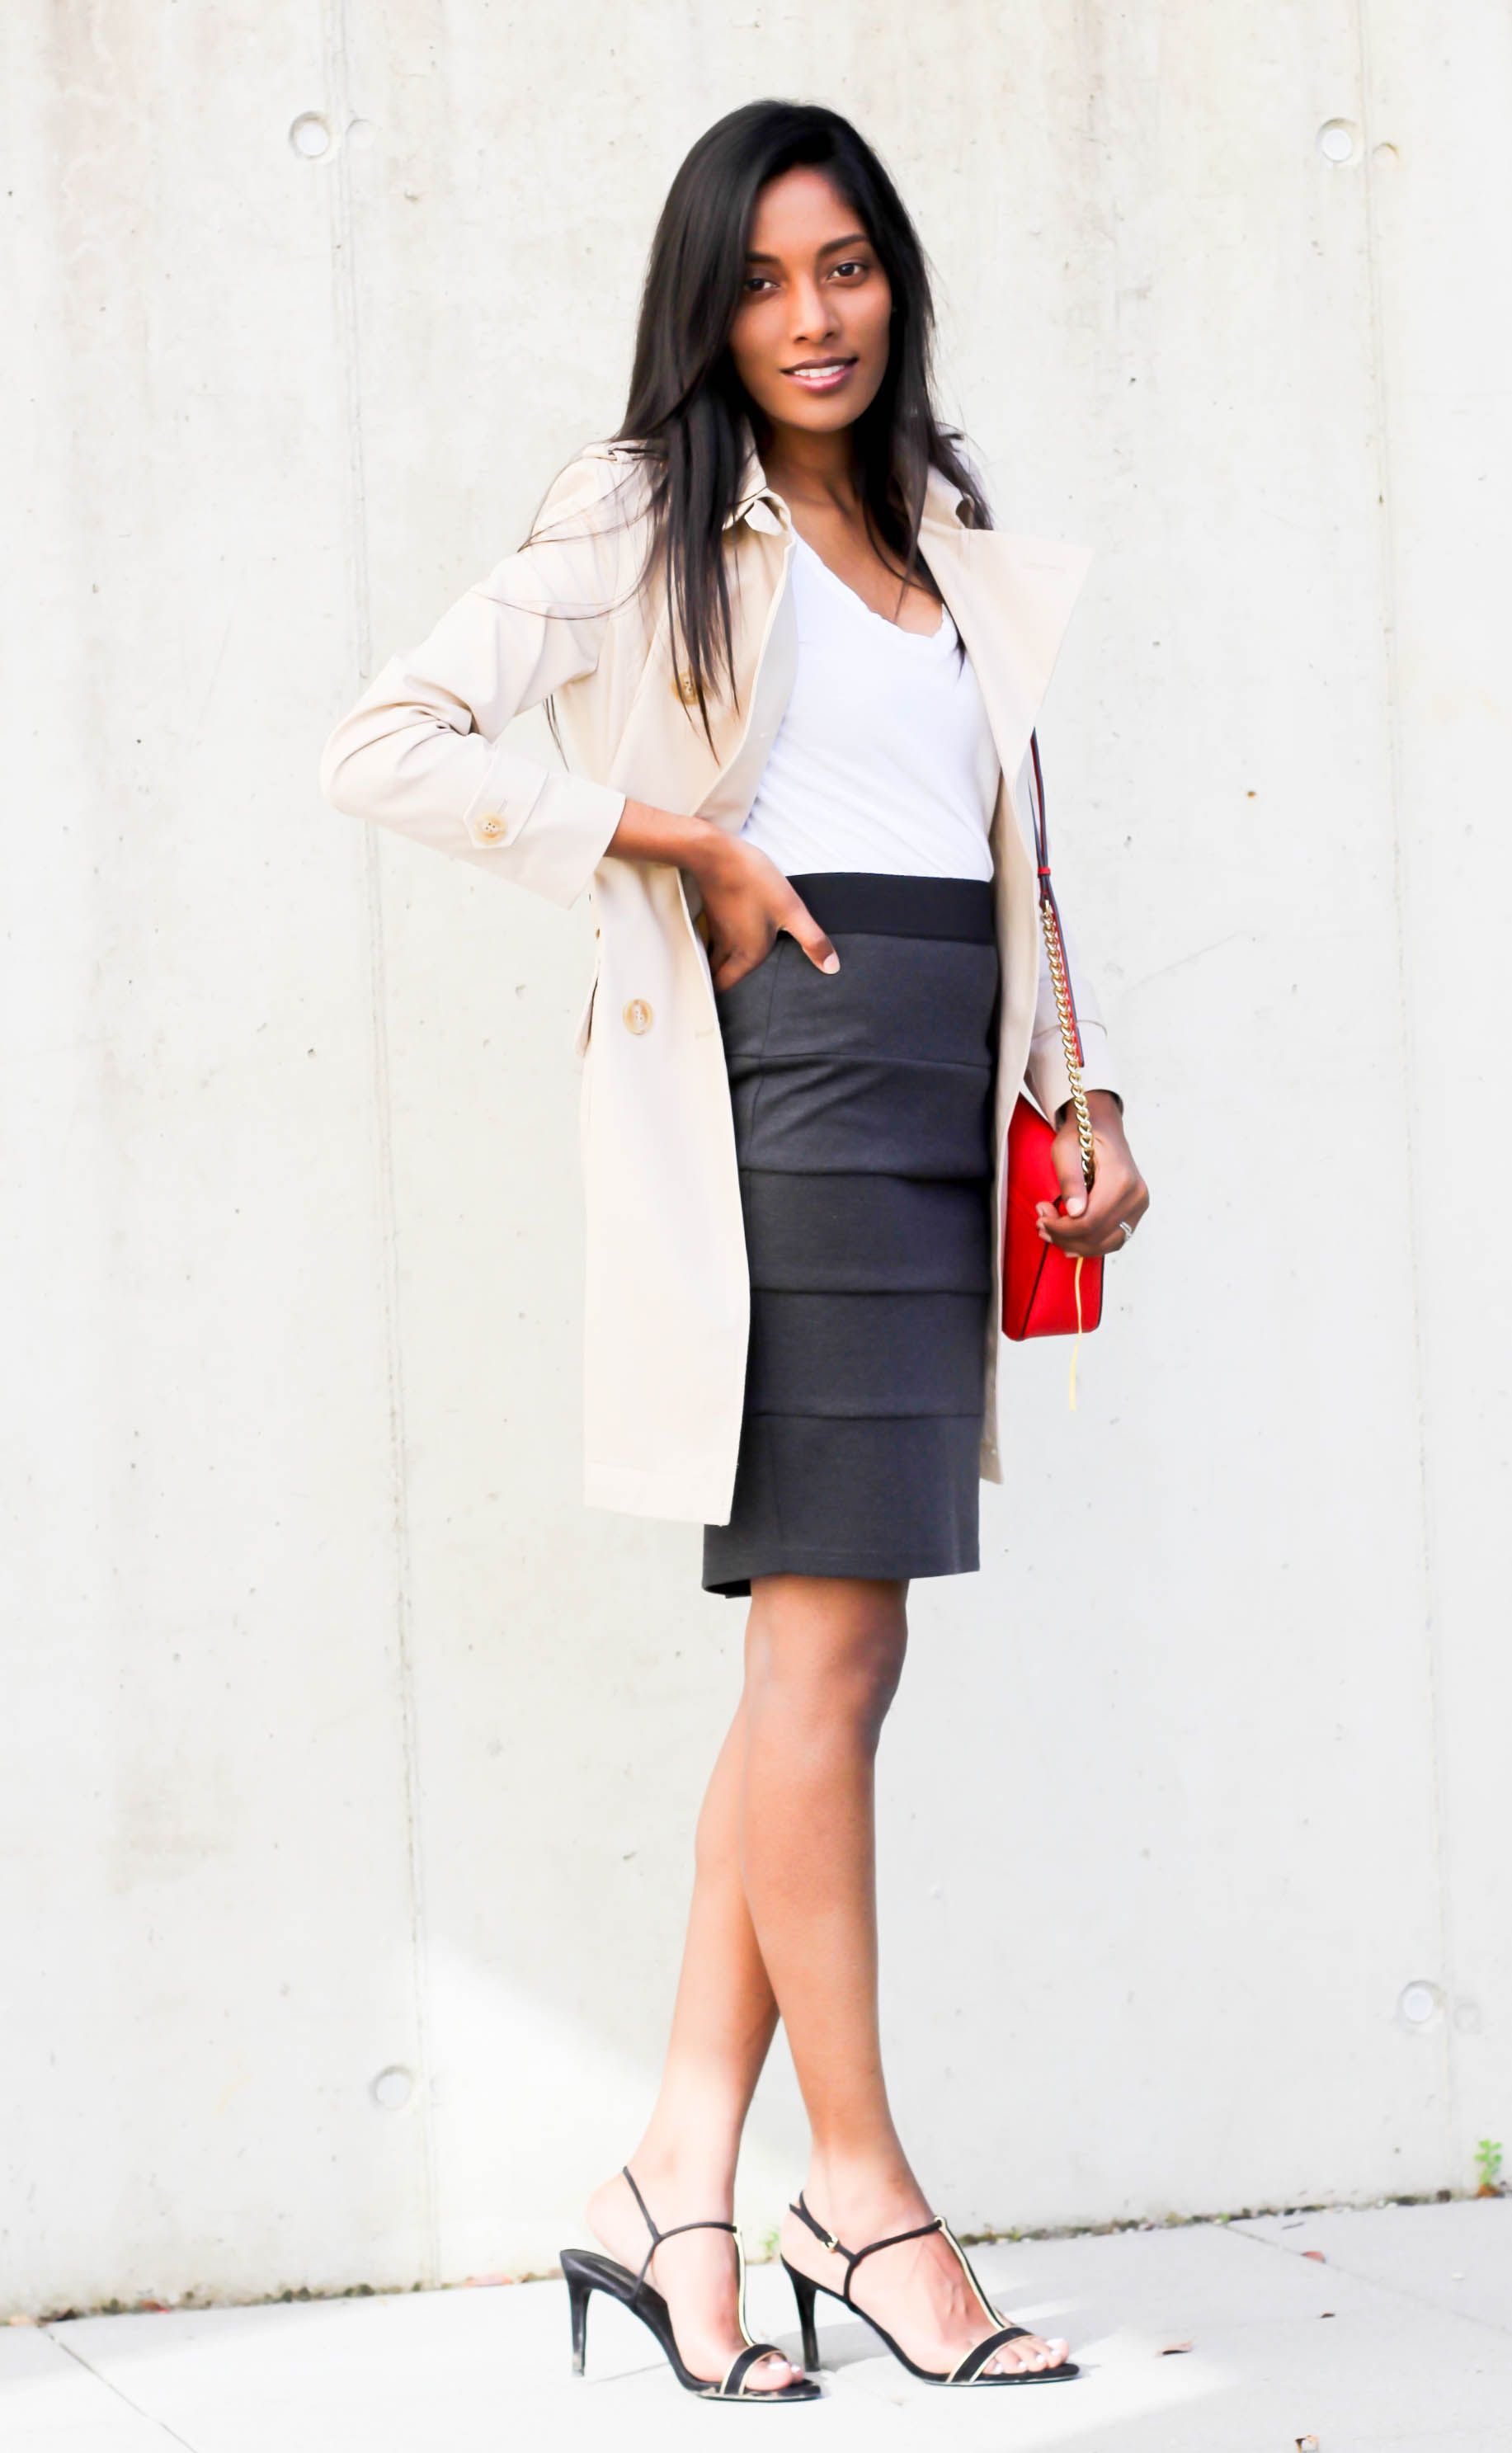 Office stylish wear forecast to wear for summer in 2019